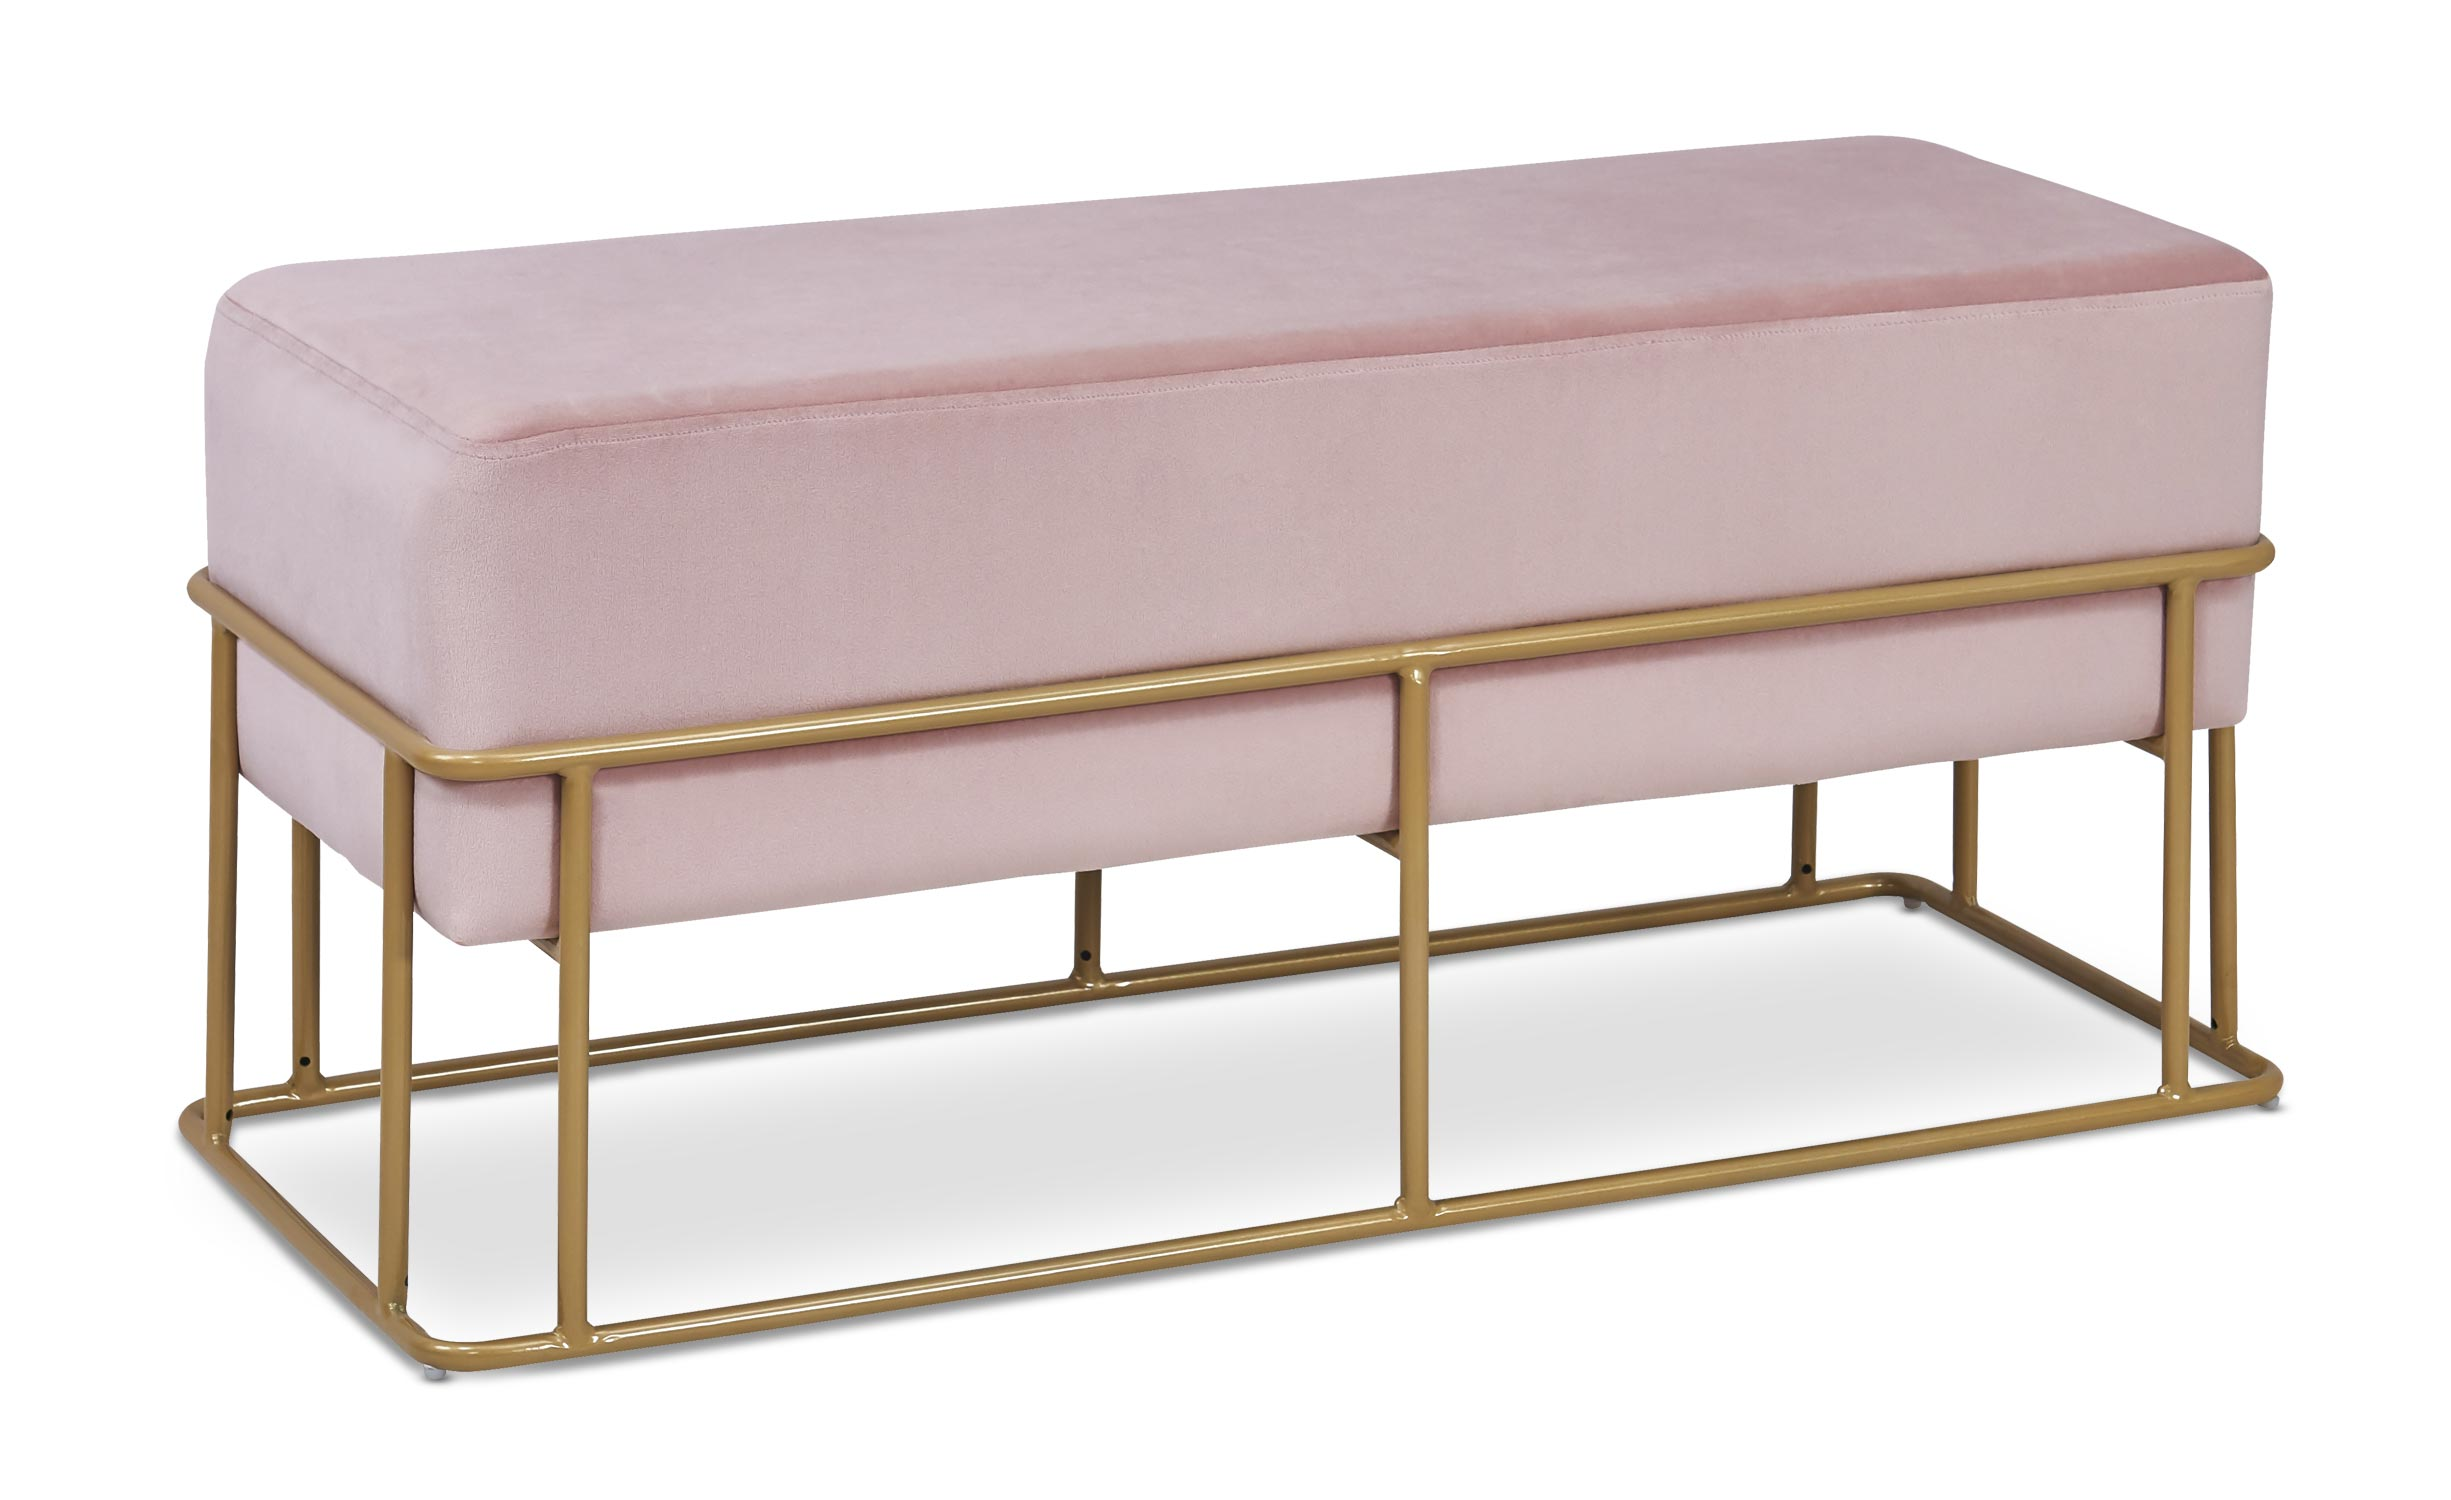 Banquette Tristan Velours Rose Pieds Or